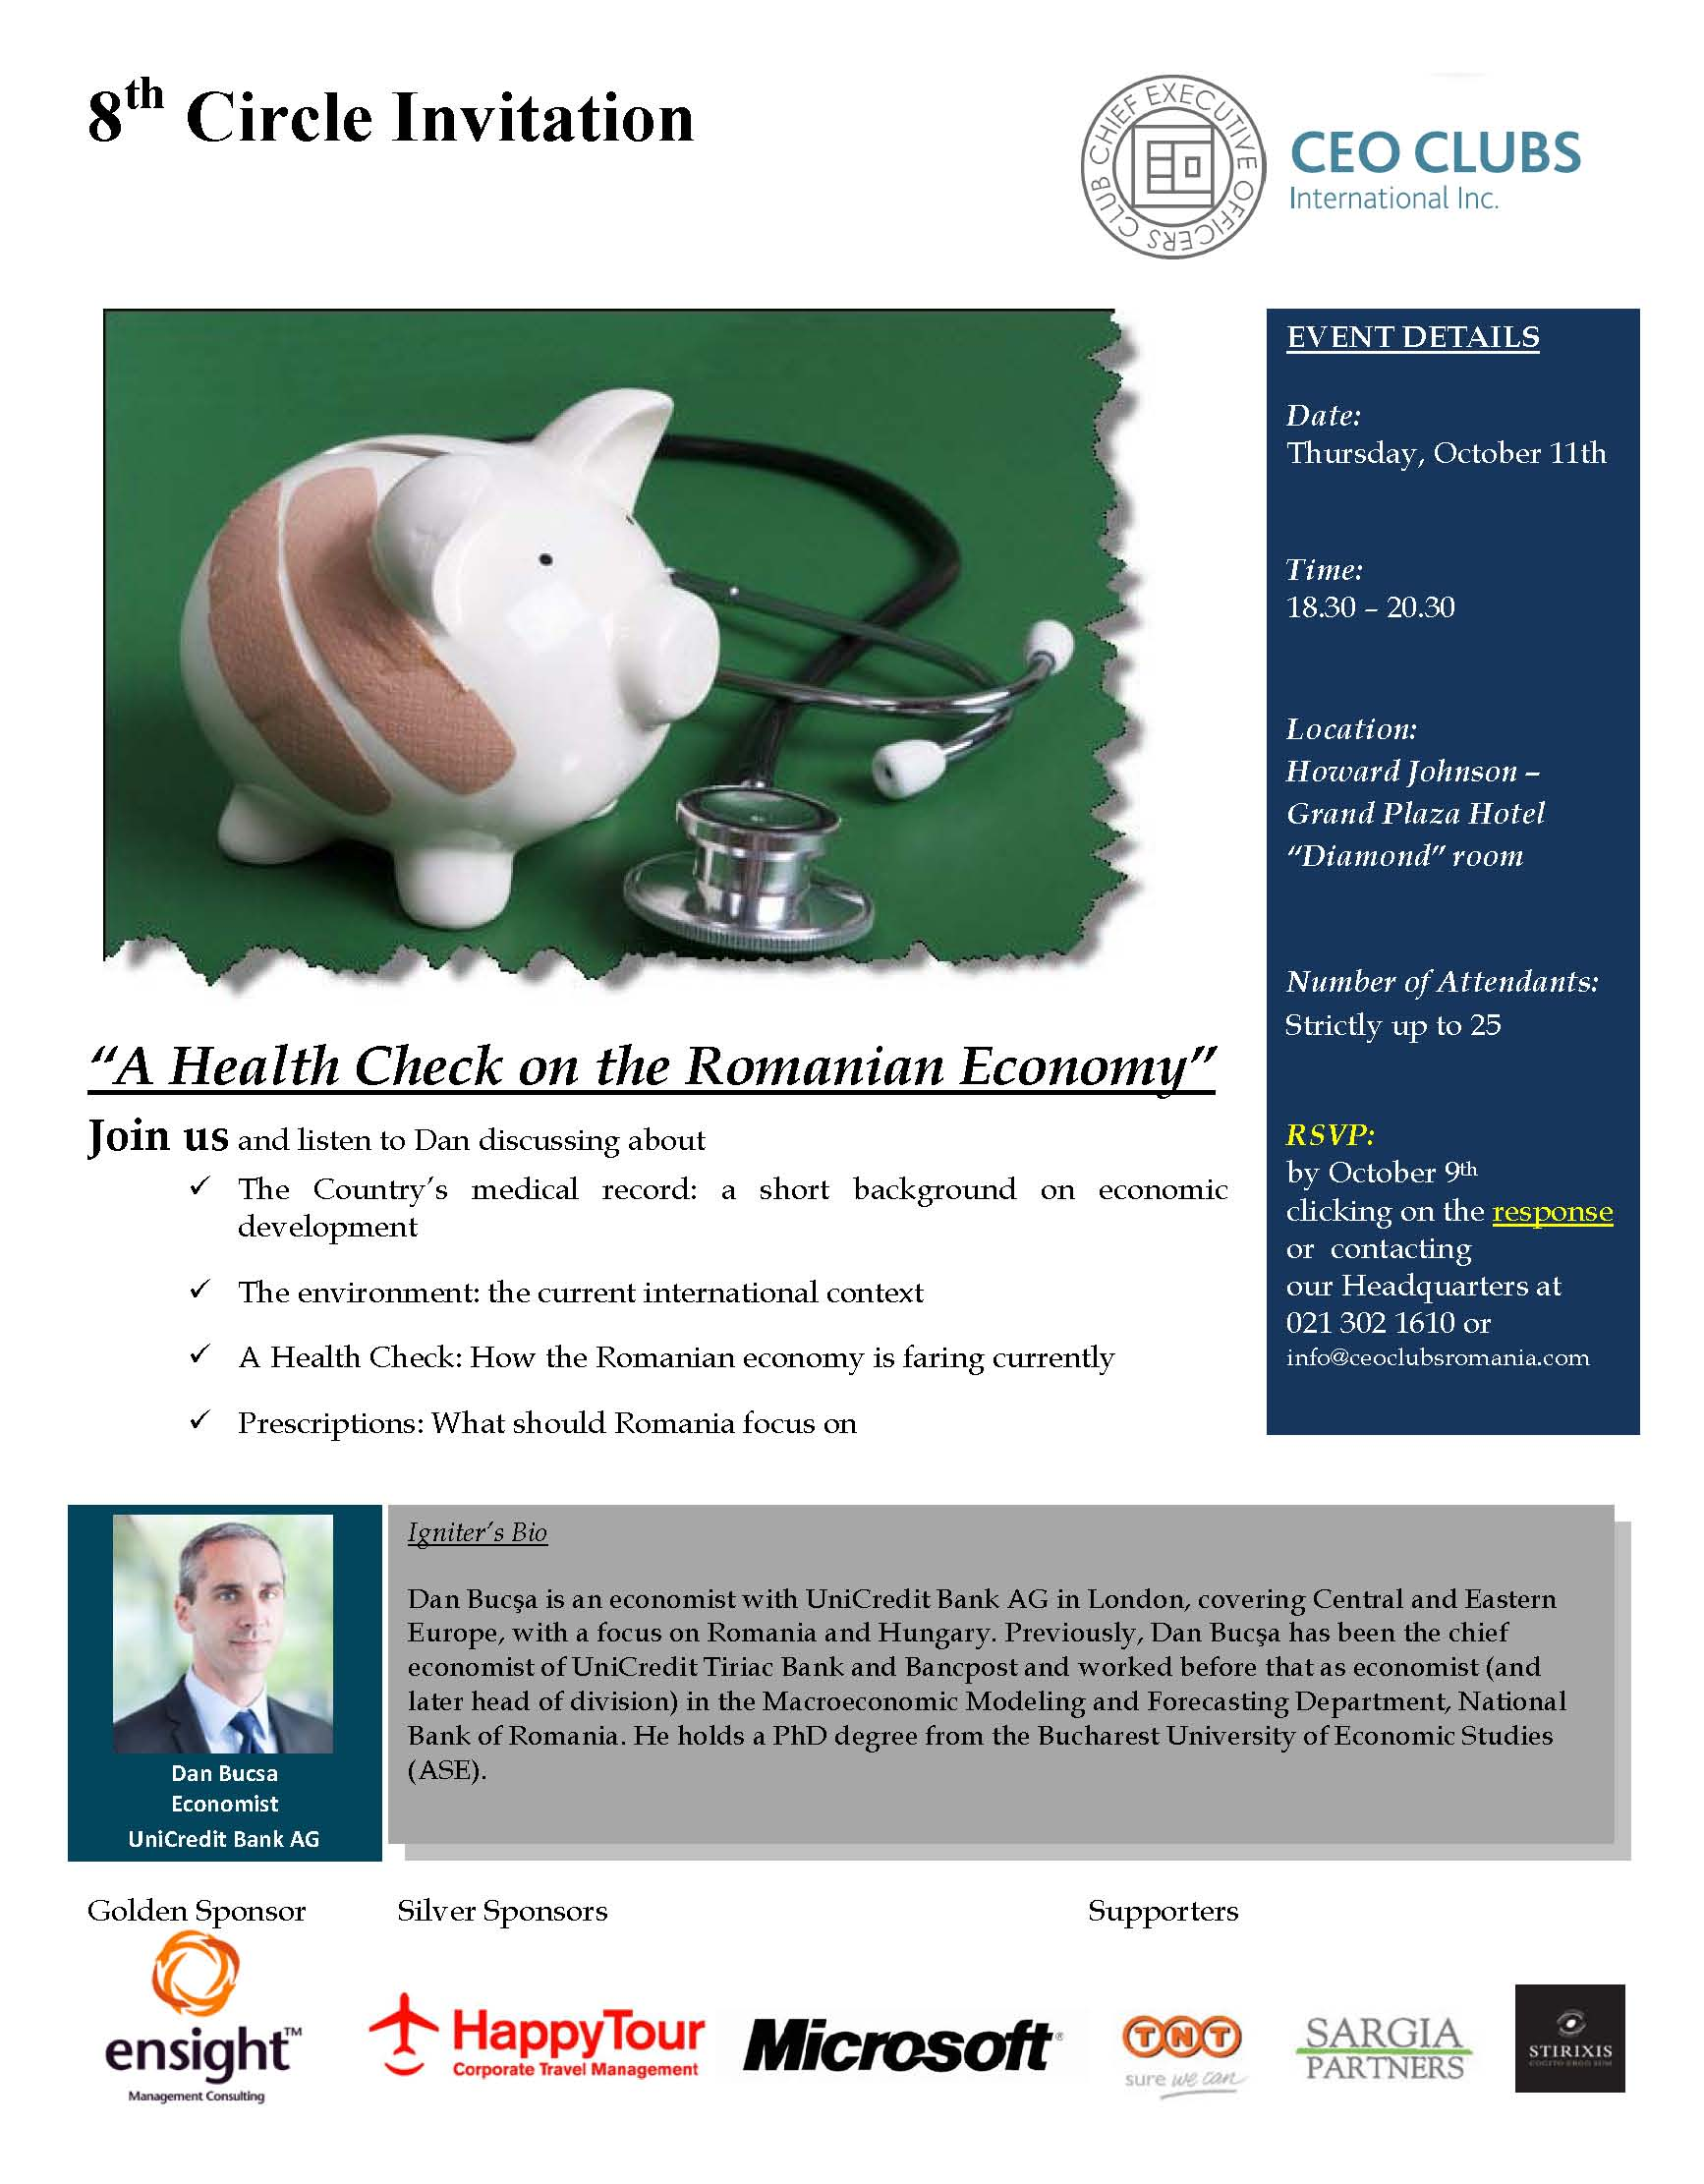 8th Circle: A Health Check on the Romanian Economy